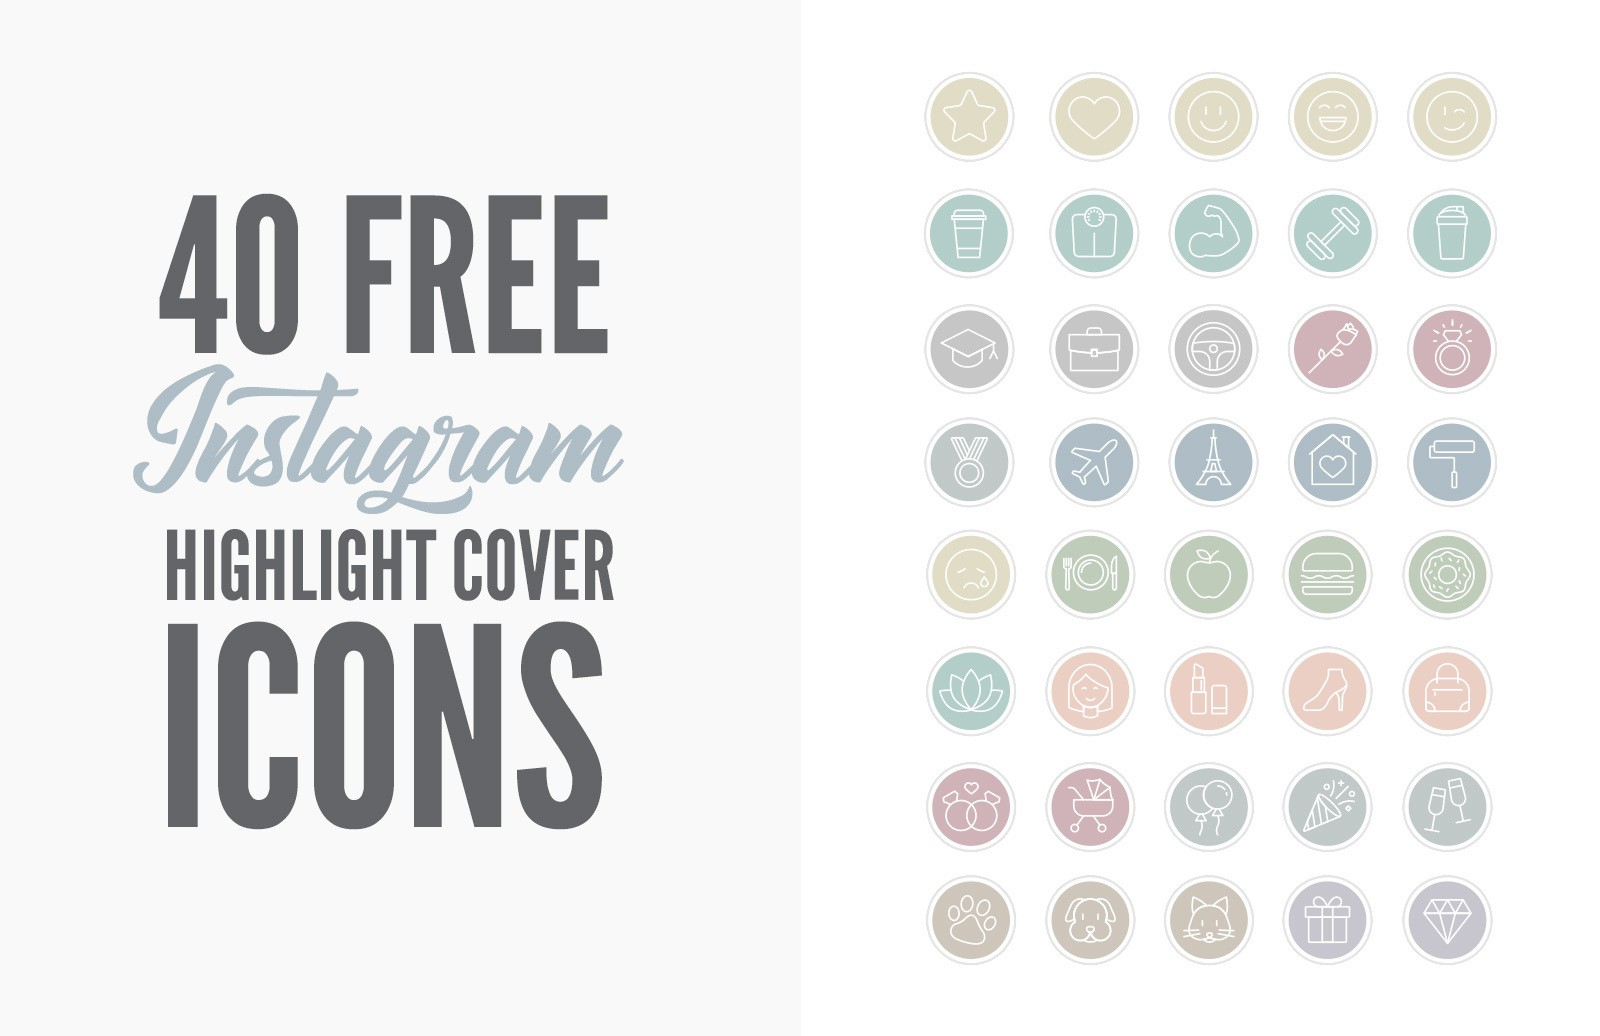 Free Instagram Highlight Cover Icons